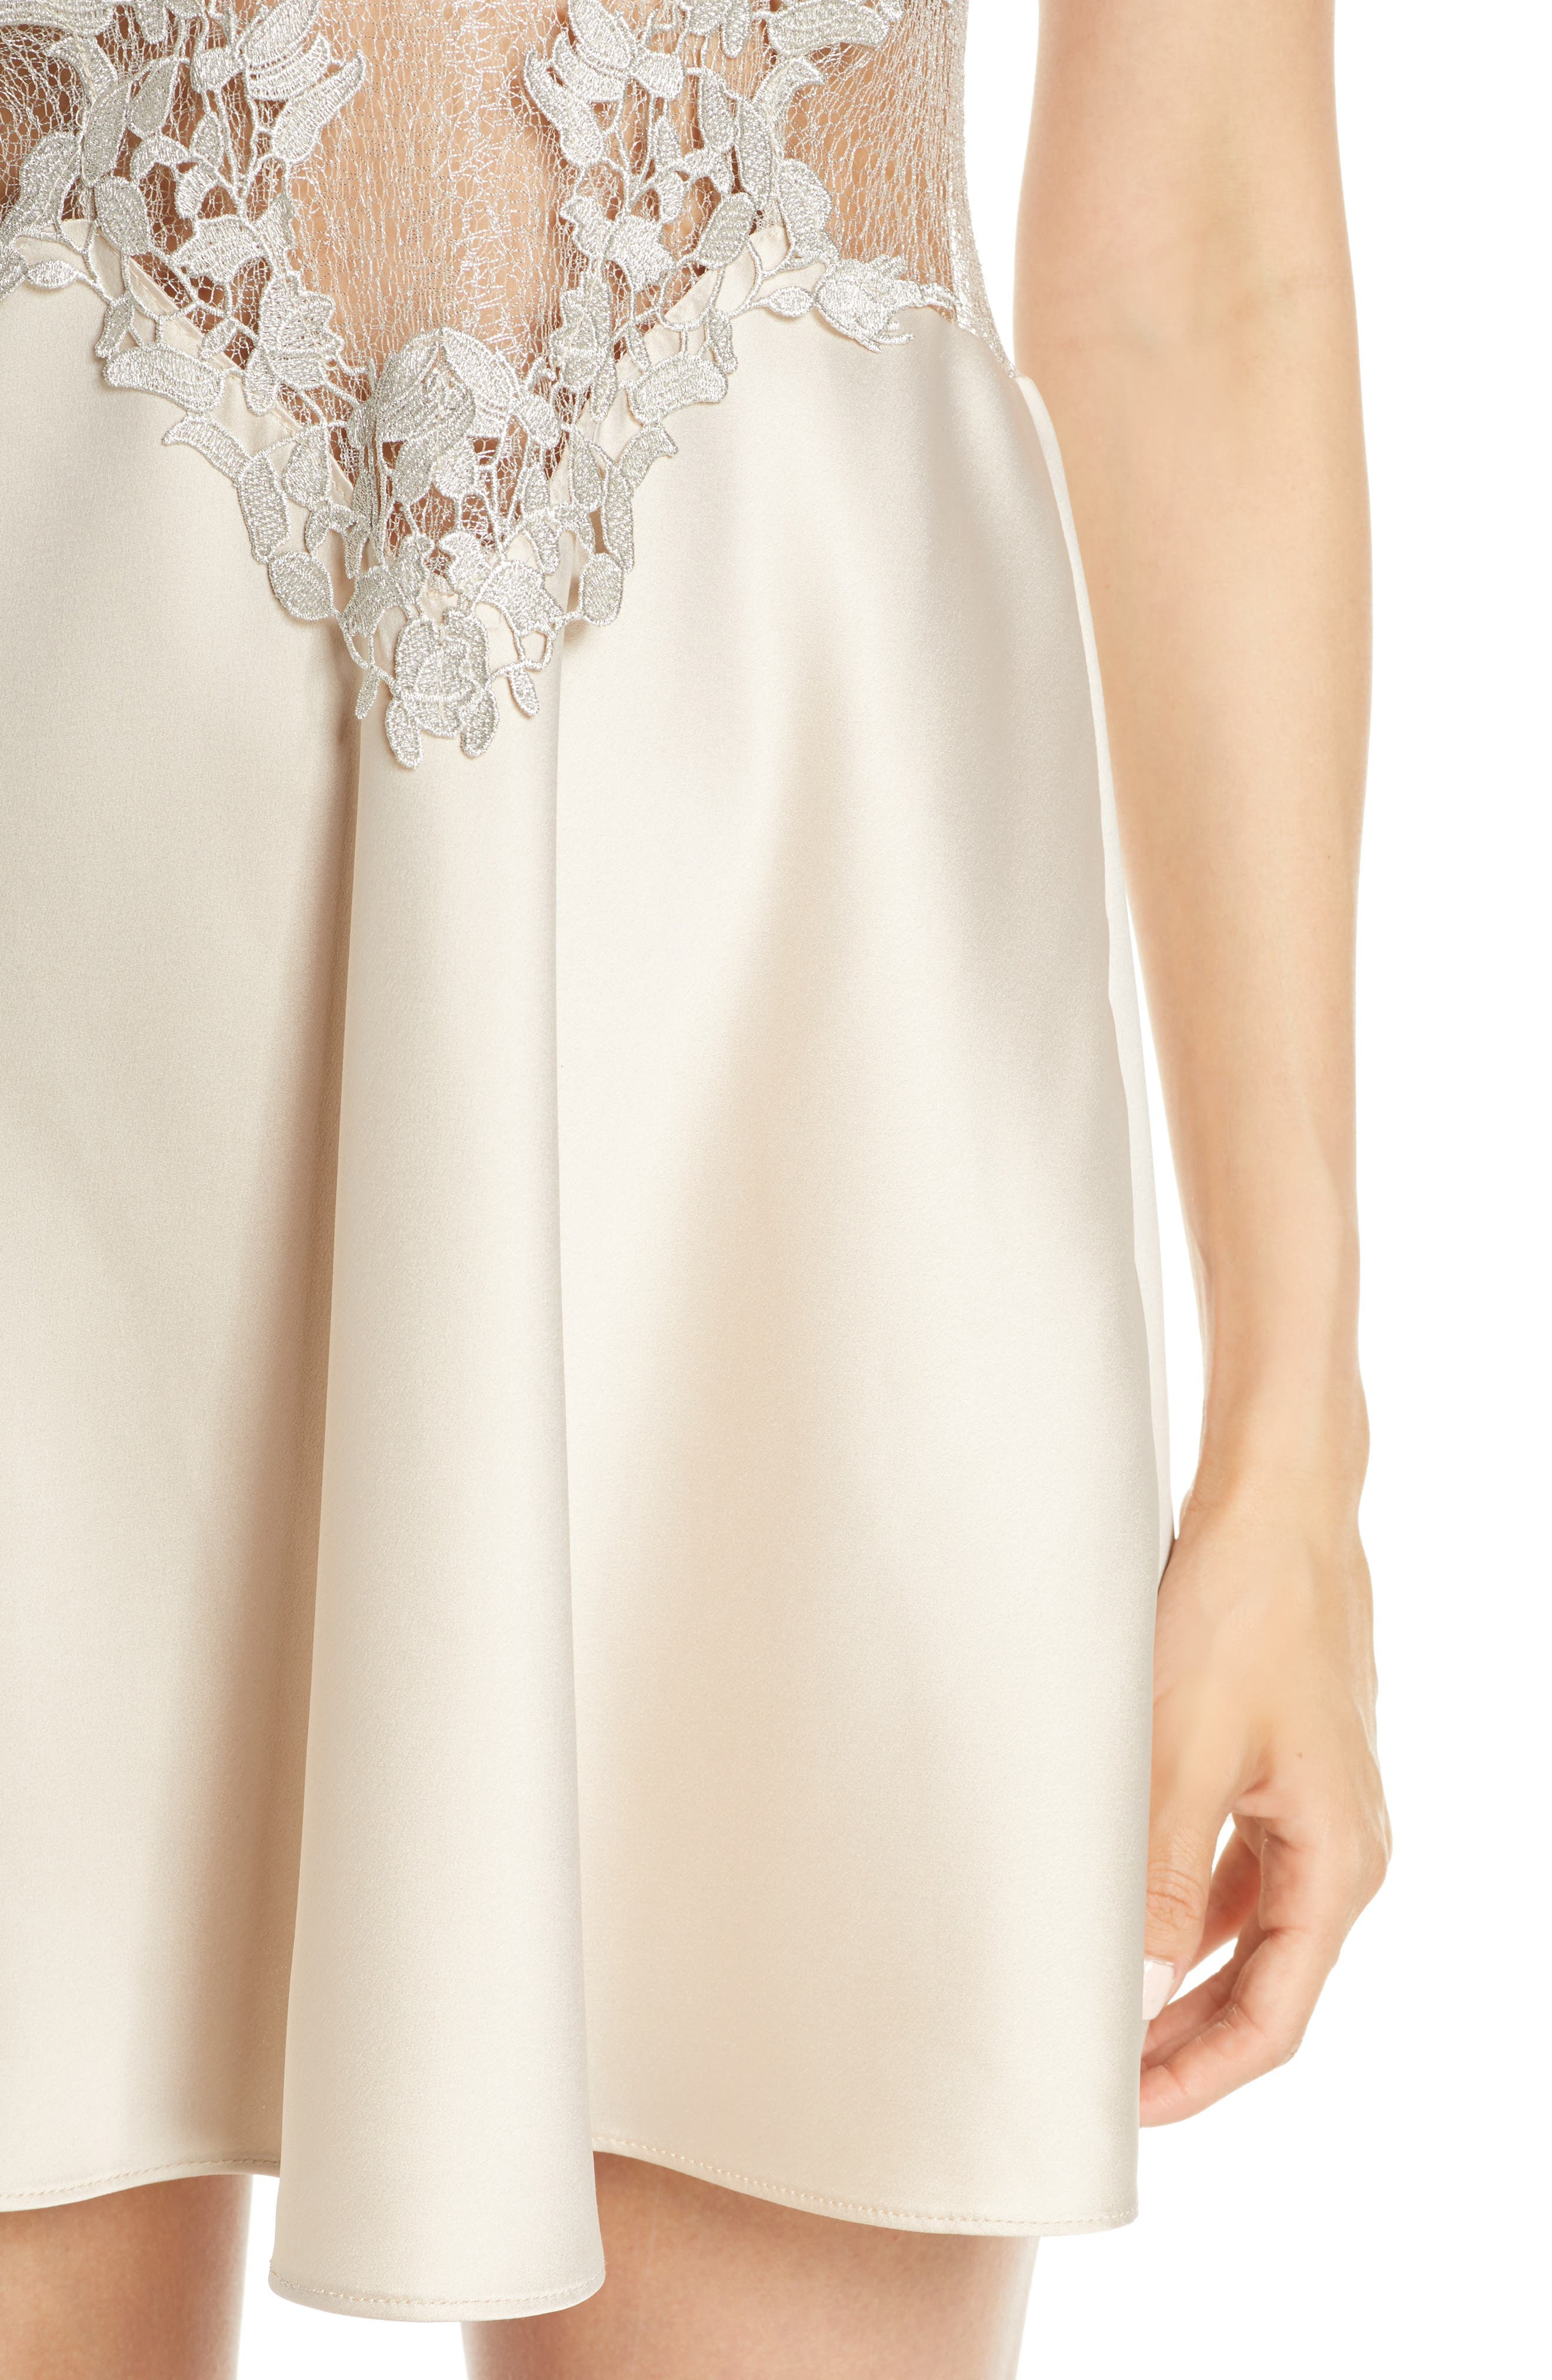 FLORA NIKROOZ, Showstopper Chemise, Alternate thumbnail 4, color, CHAMPAGNE